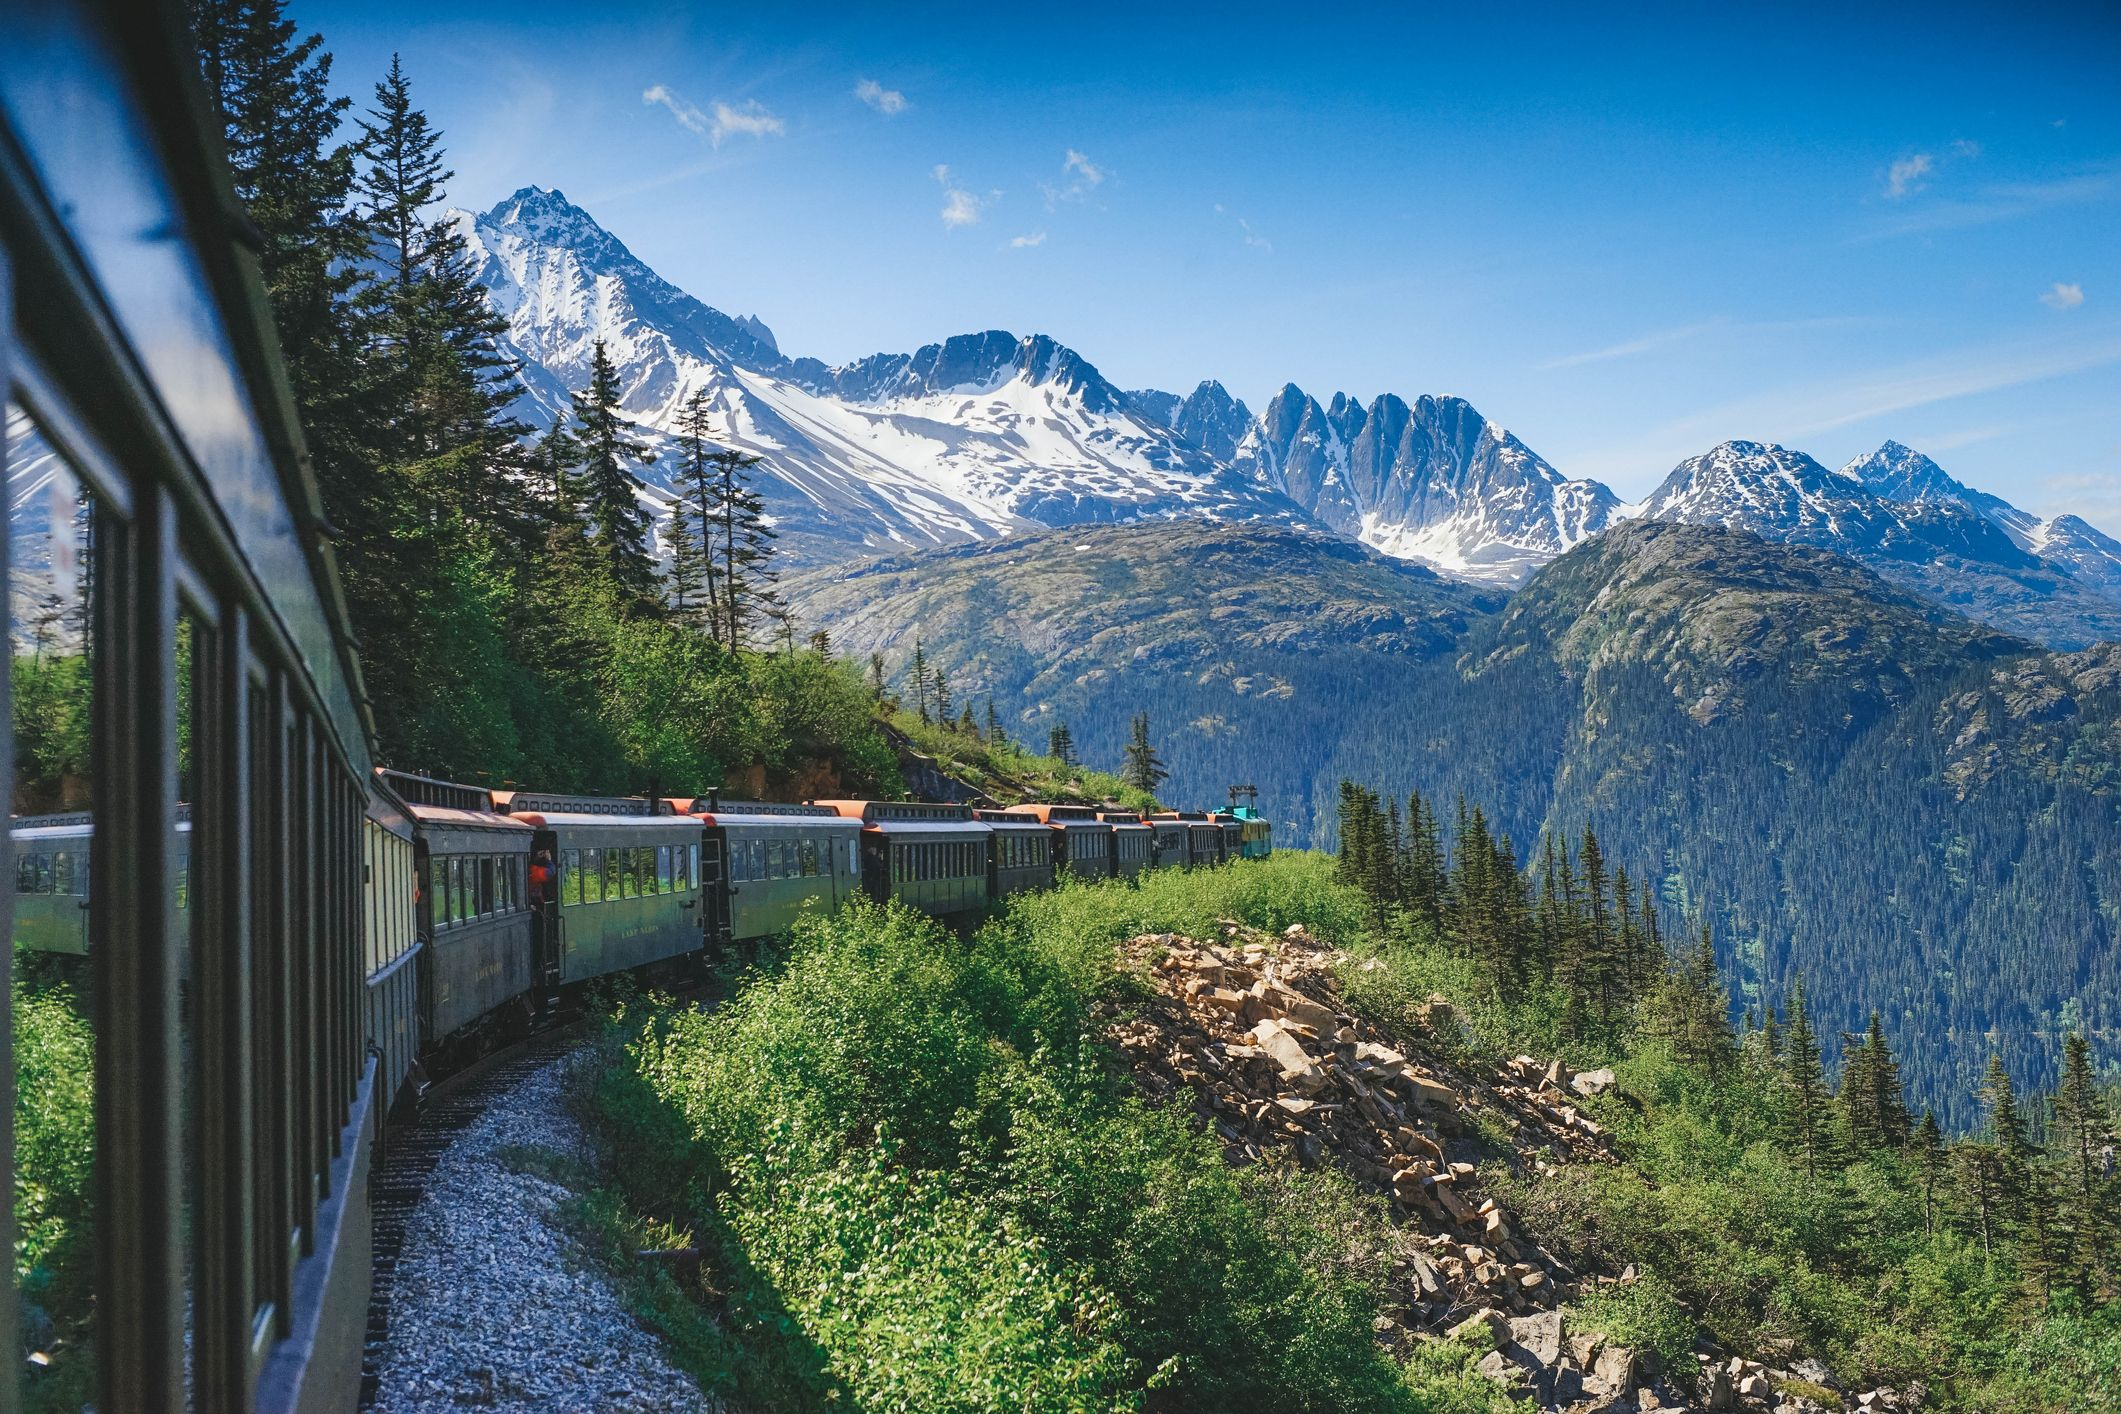 Train bragging: The sustainable travel trend to know about in 2020